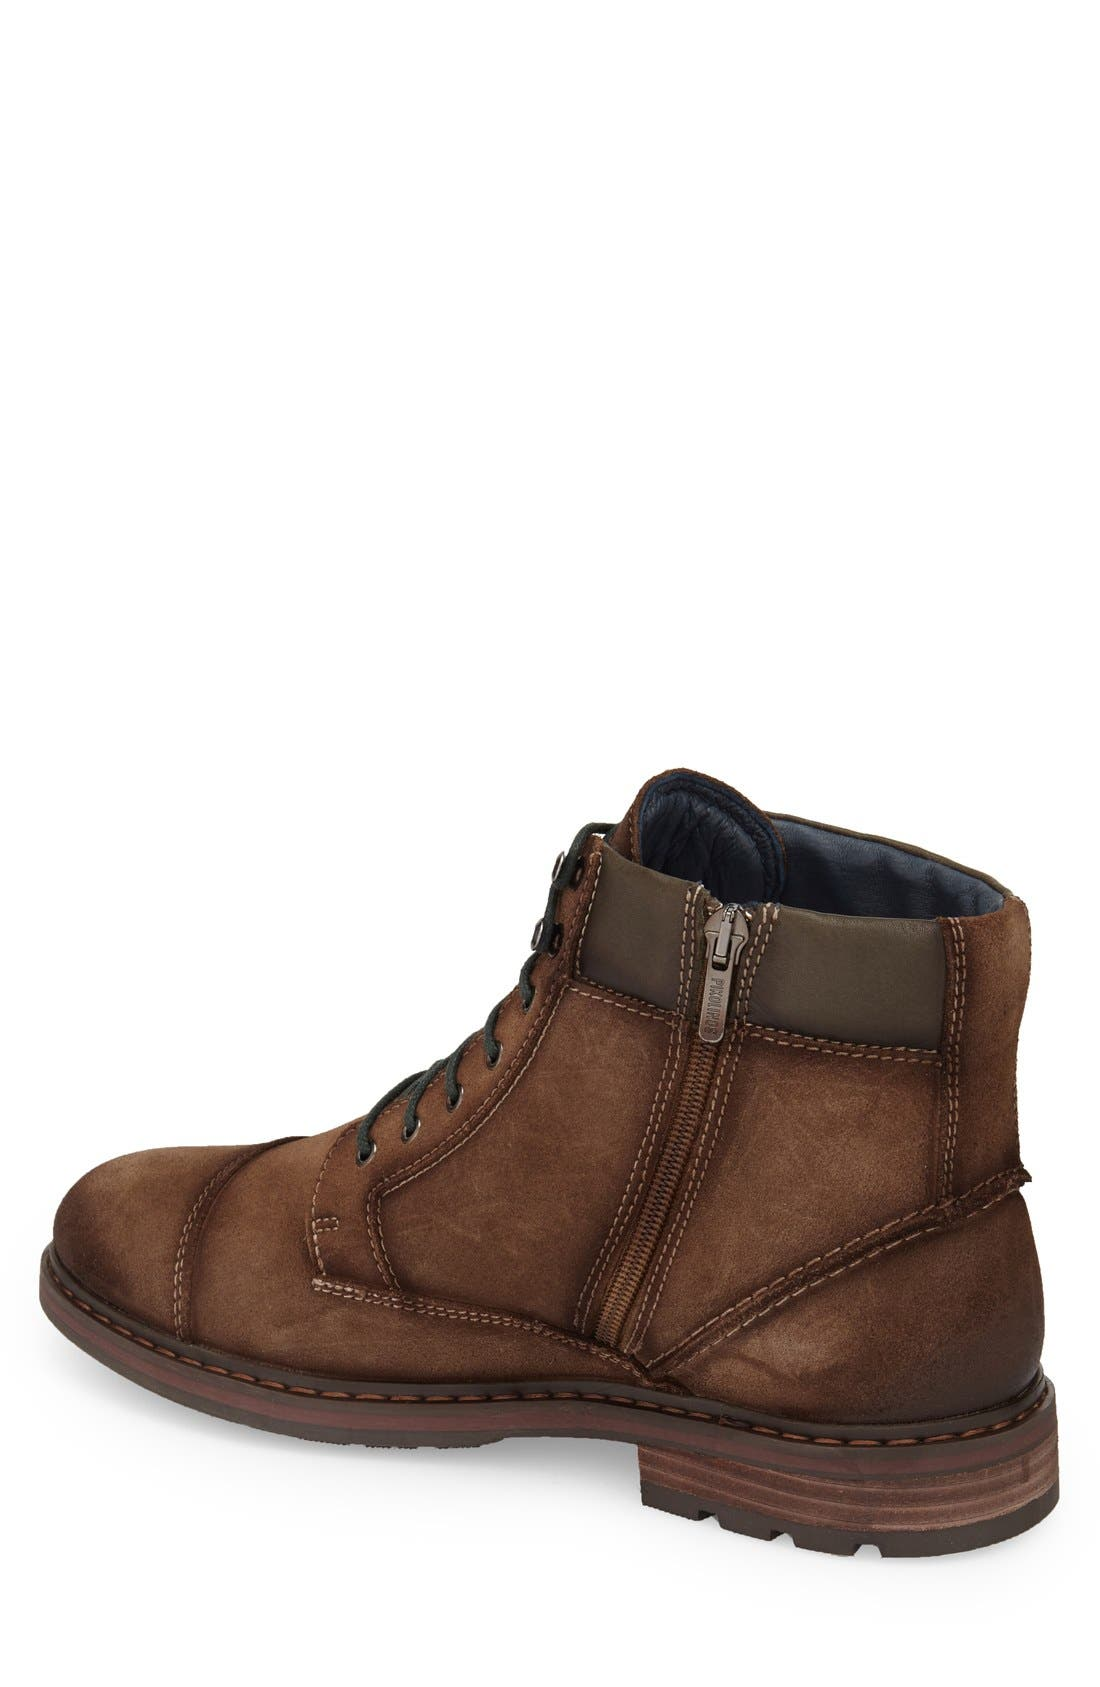 'Cacers' Lace-Up Zip Boot,                             Alternate thumbnail 2, color,                             200